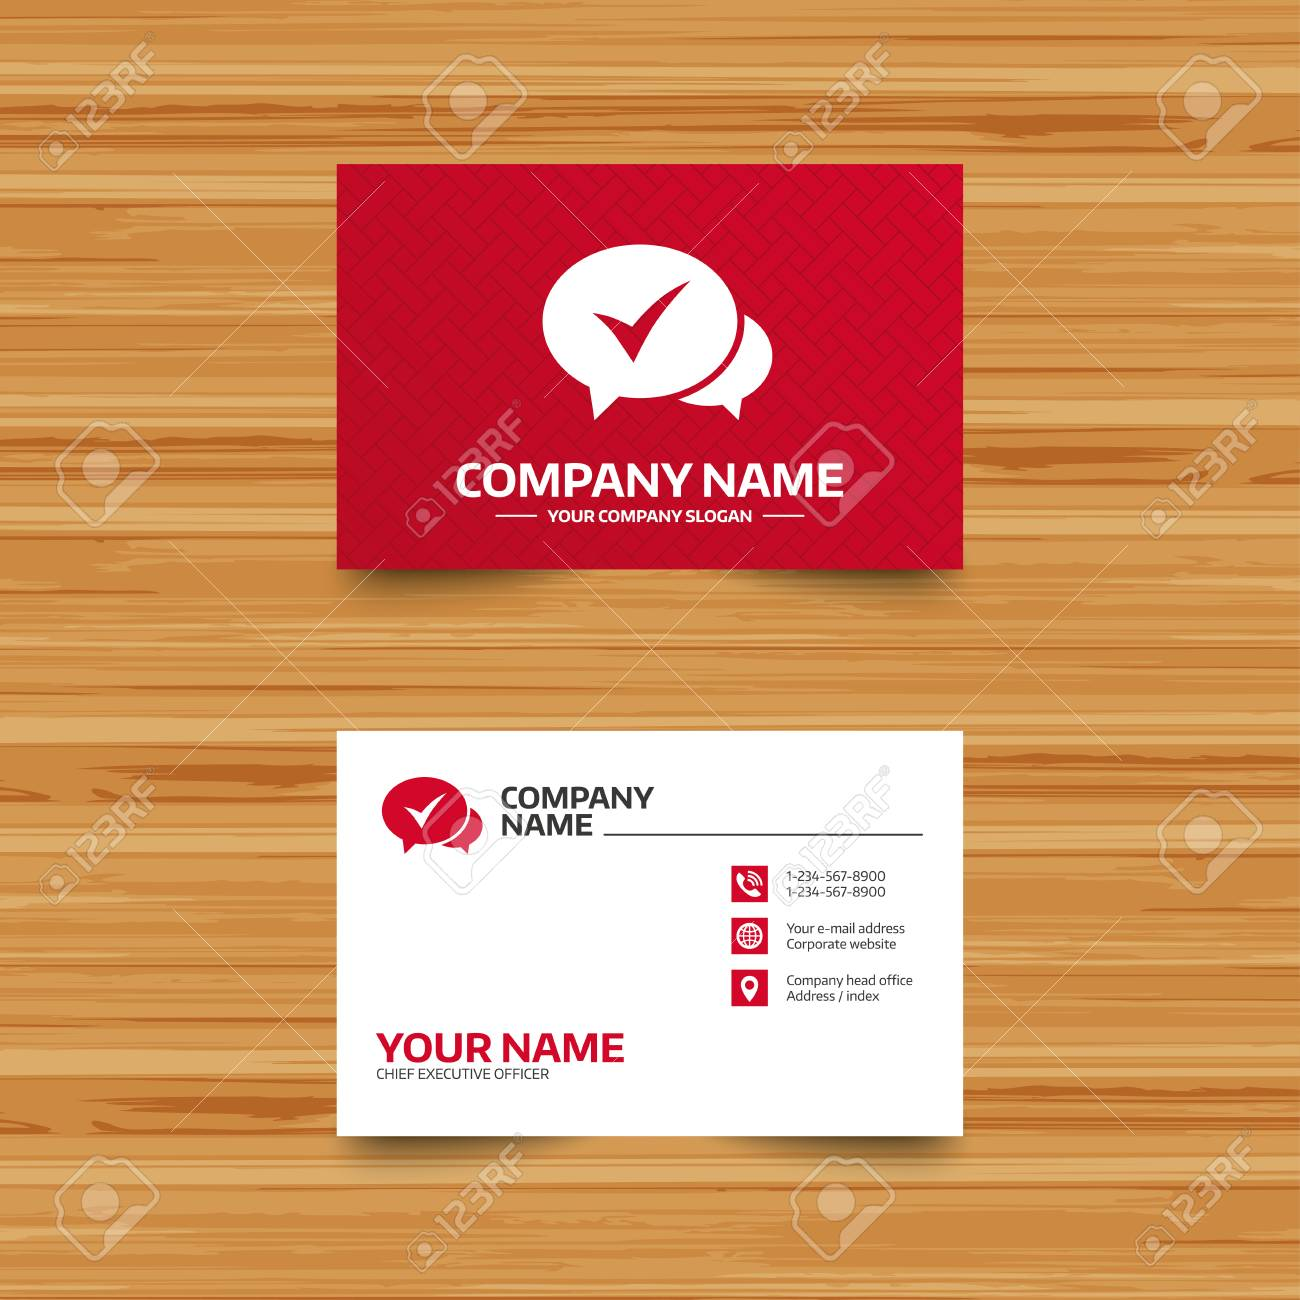 business card template check sign icon yes or tick symbol